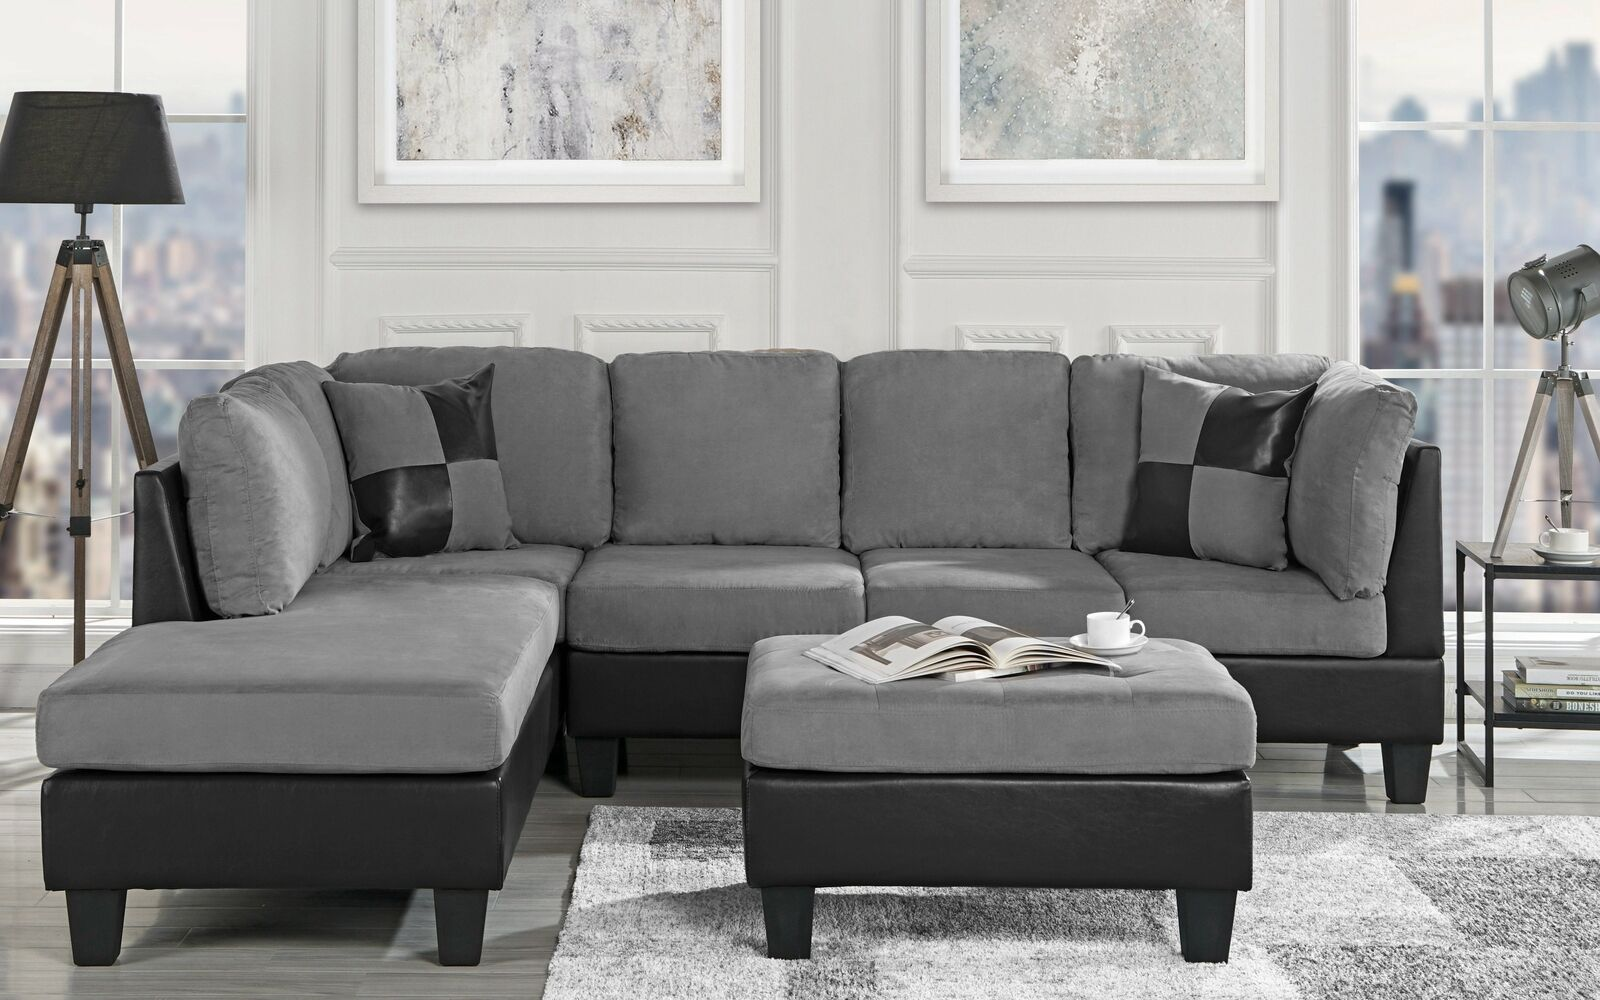 3 pc living room sofa set microfiber faux leather sectional reversible grey